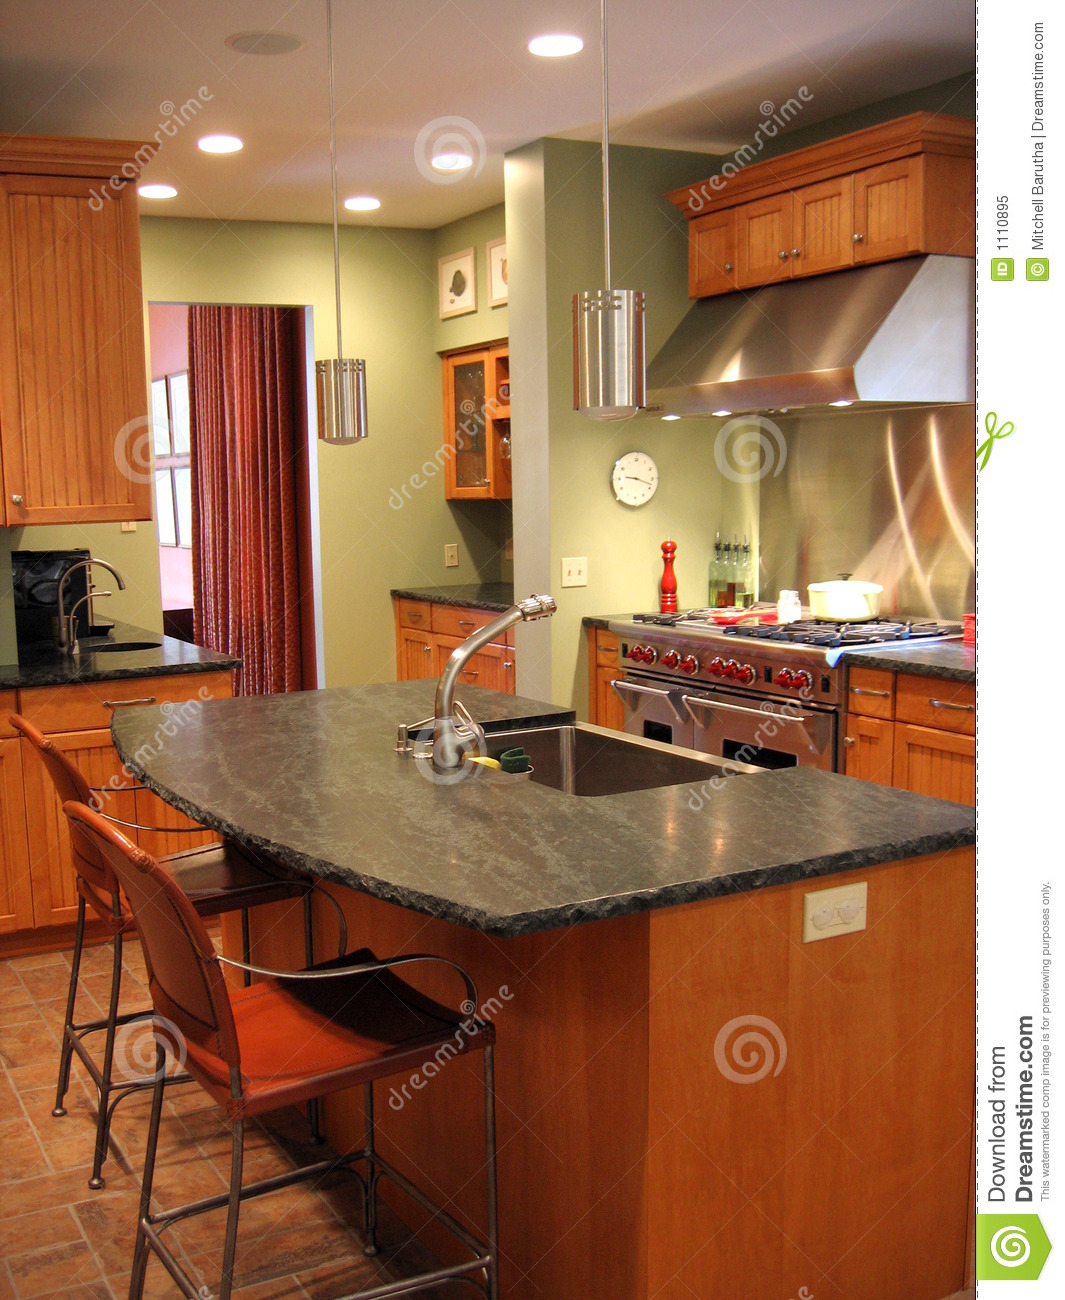 royalty free stock photo remodeled kitchen image remodeled kitchen Remodeled kitchen